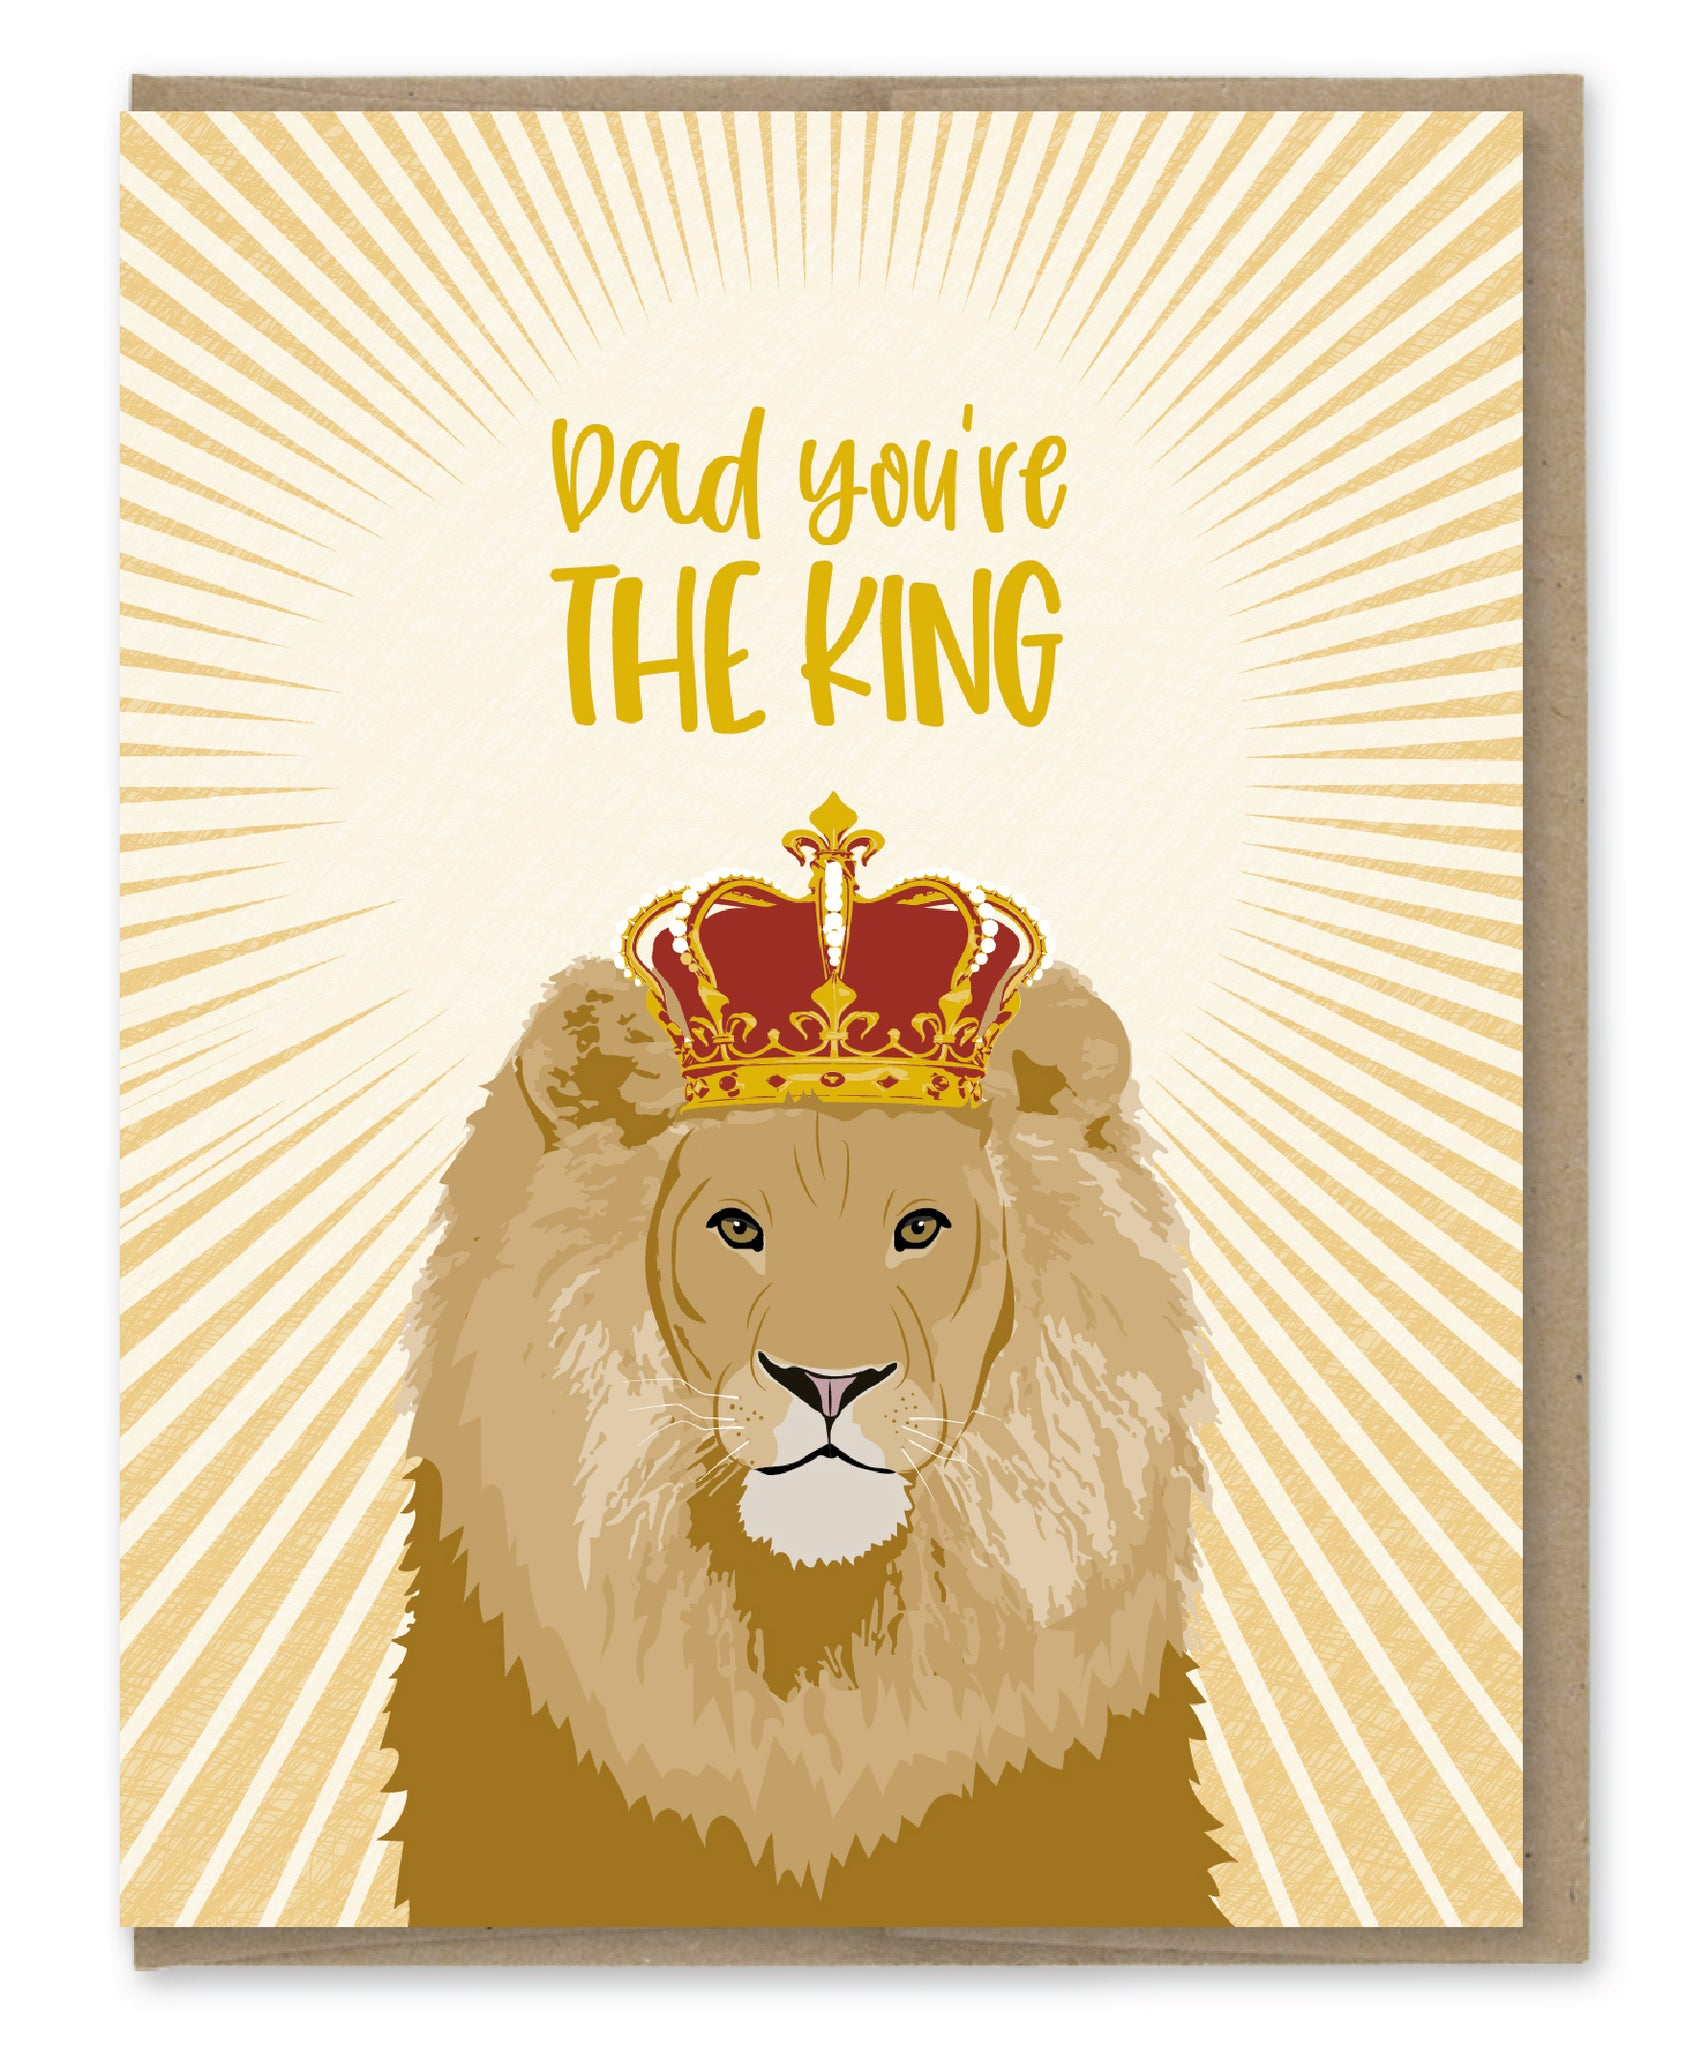 DAD THE KING CARD